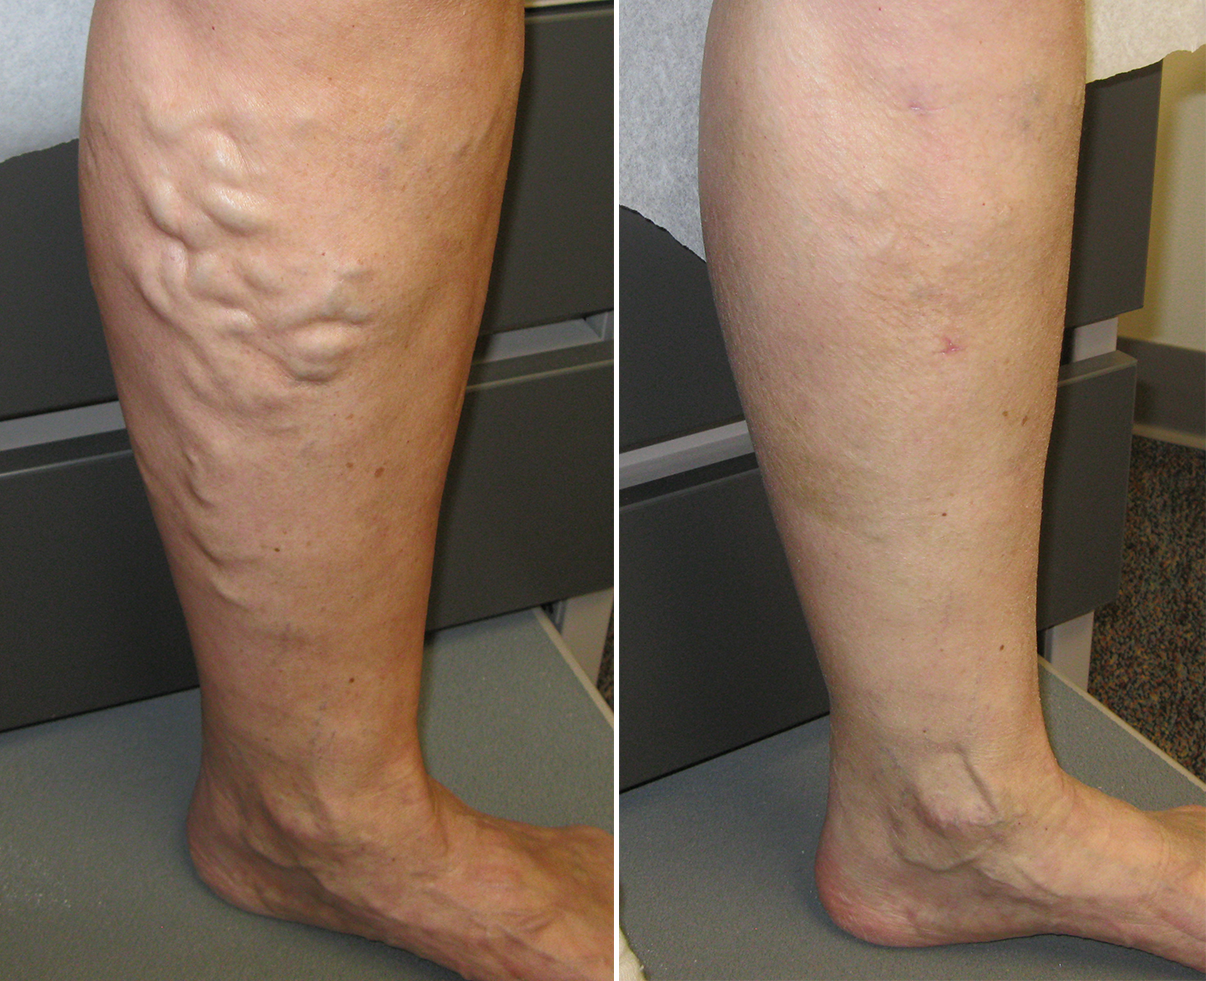 What to Expect From Varicose Veins Treatment